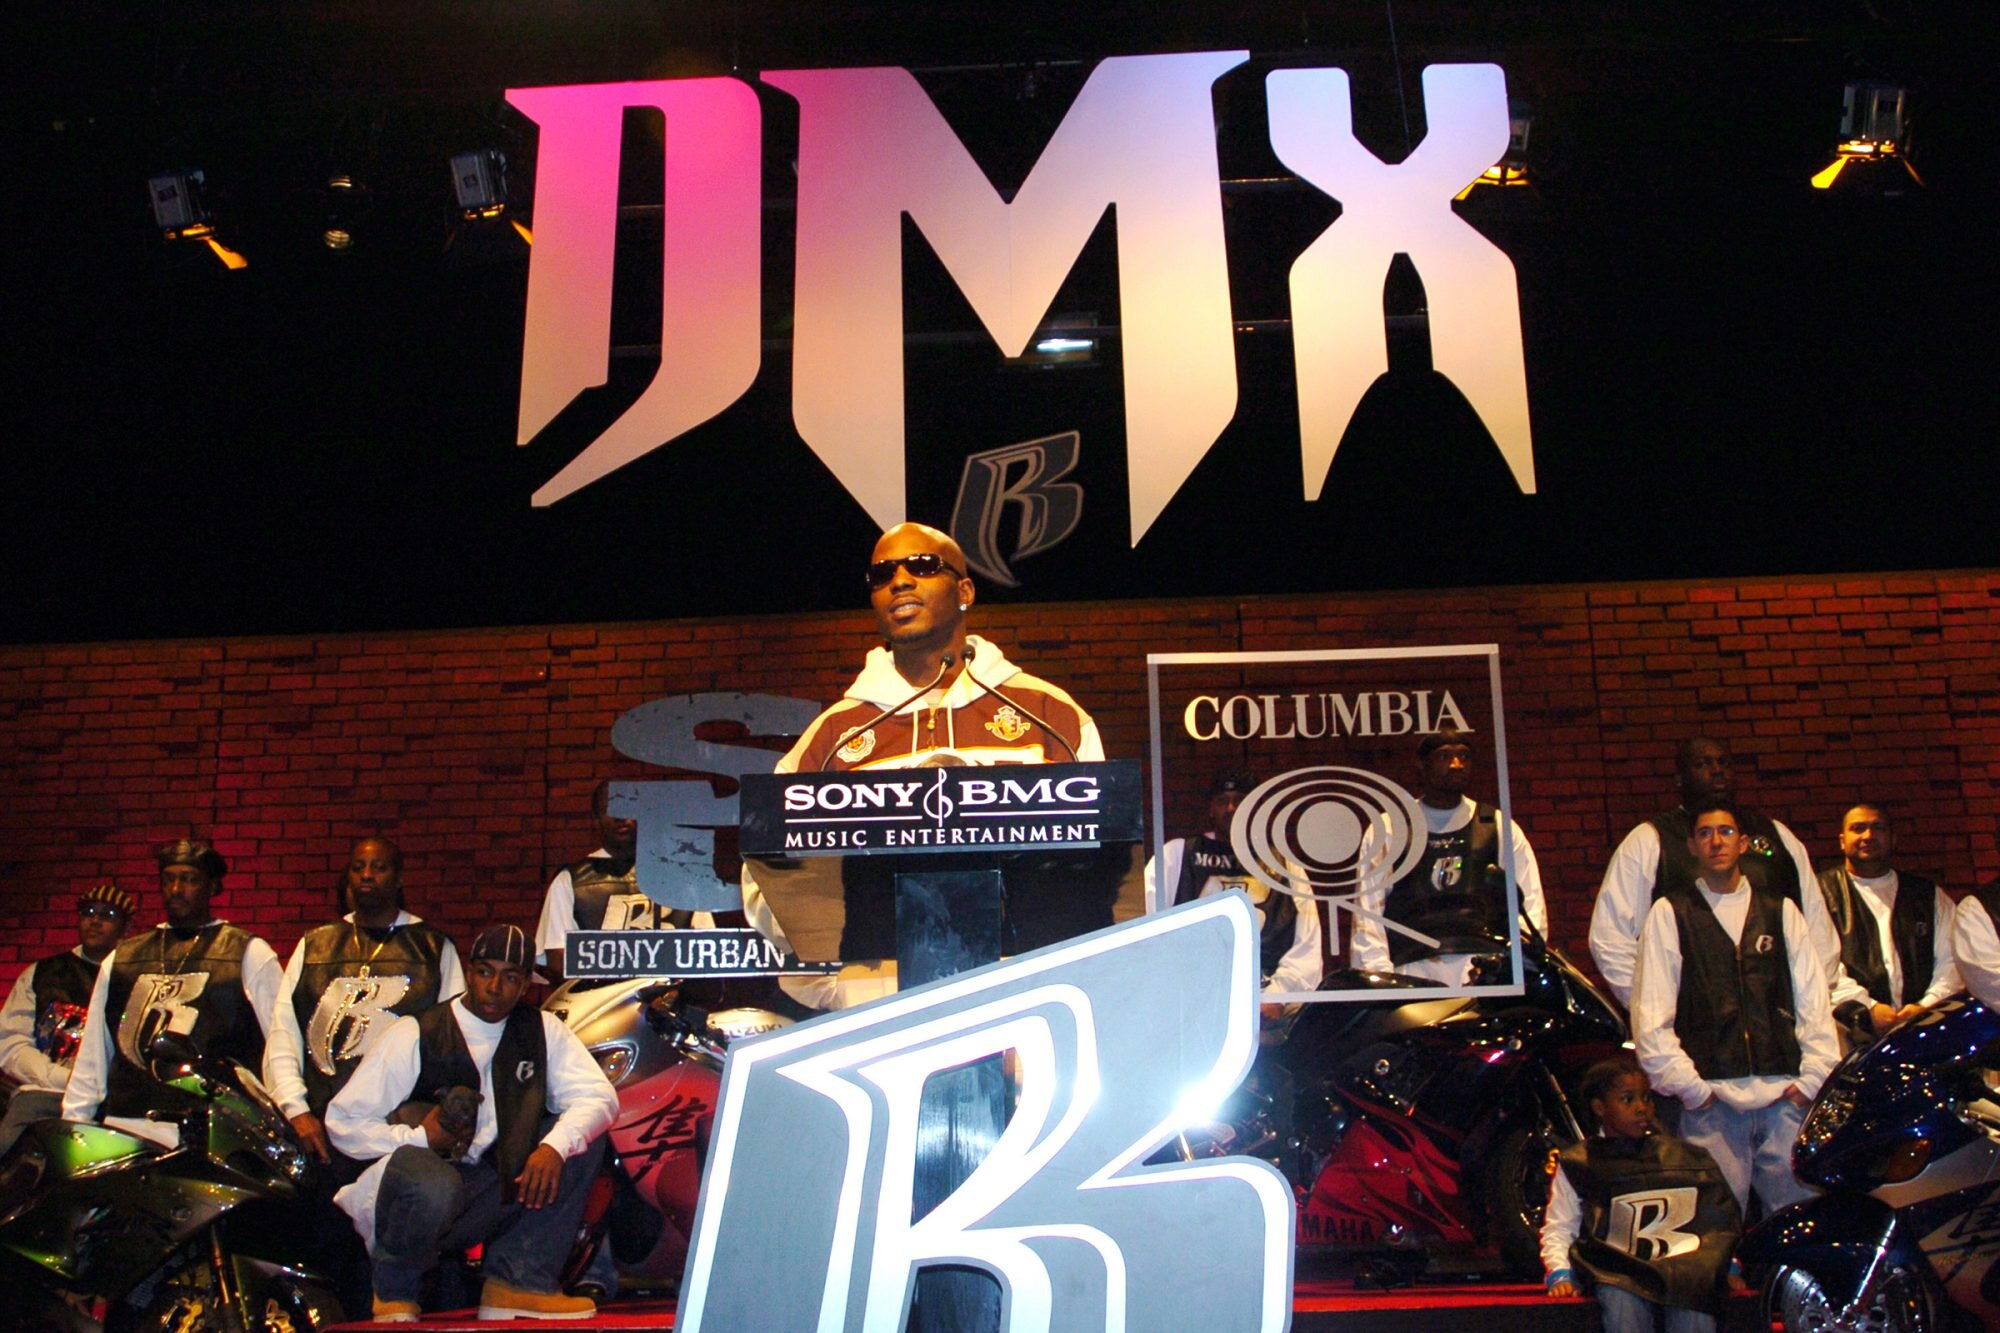 DMX during DMX Signs to Sony Urban Music/Columbia Records - Press Conference at 447 West 53rd Street in New York City